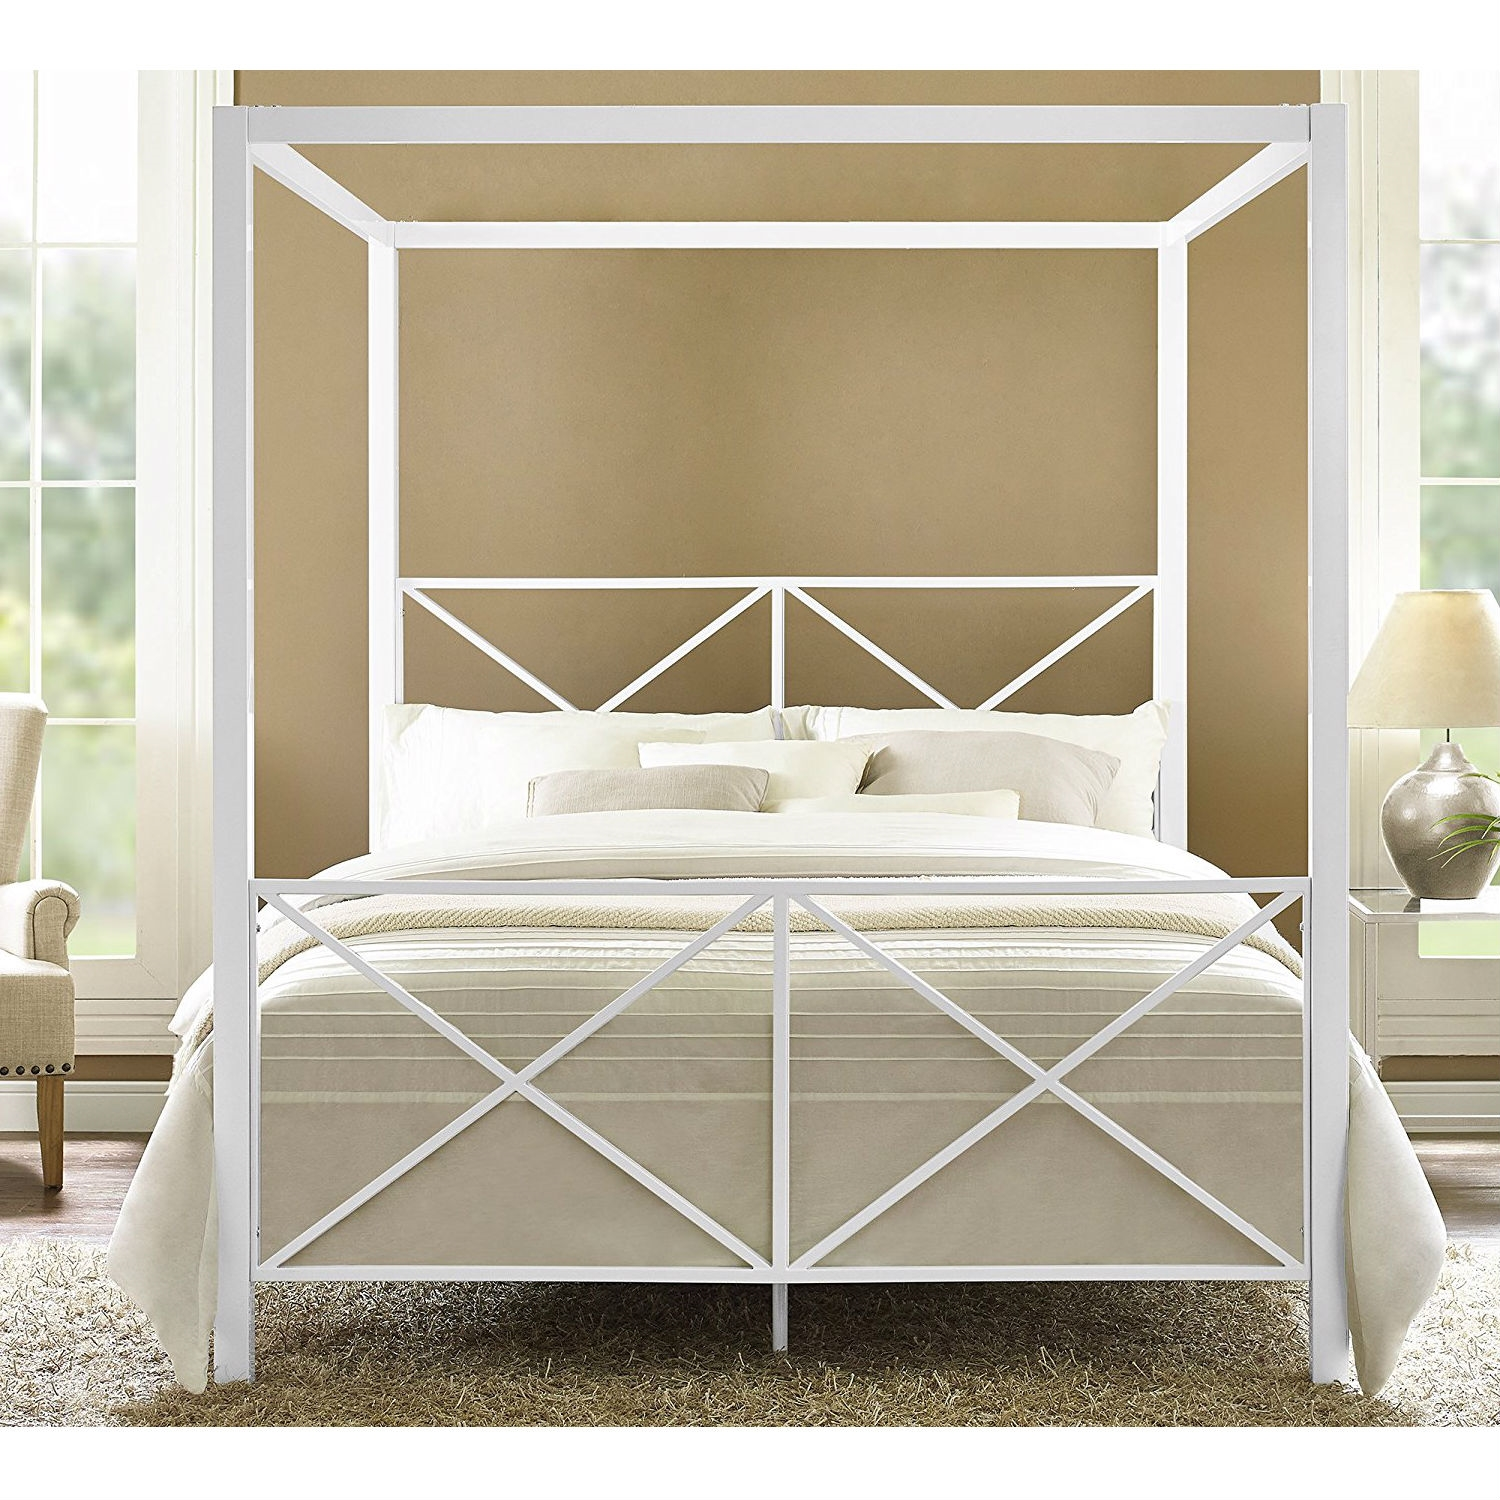 Queen Size Sturdy Metal Canopy Bed Frame In White Fastfurnishings Com